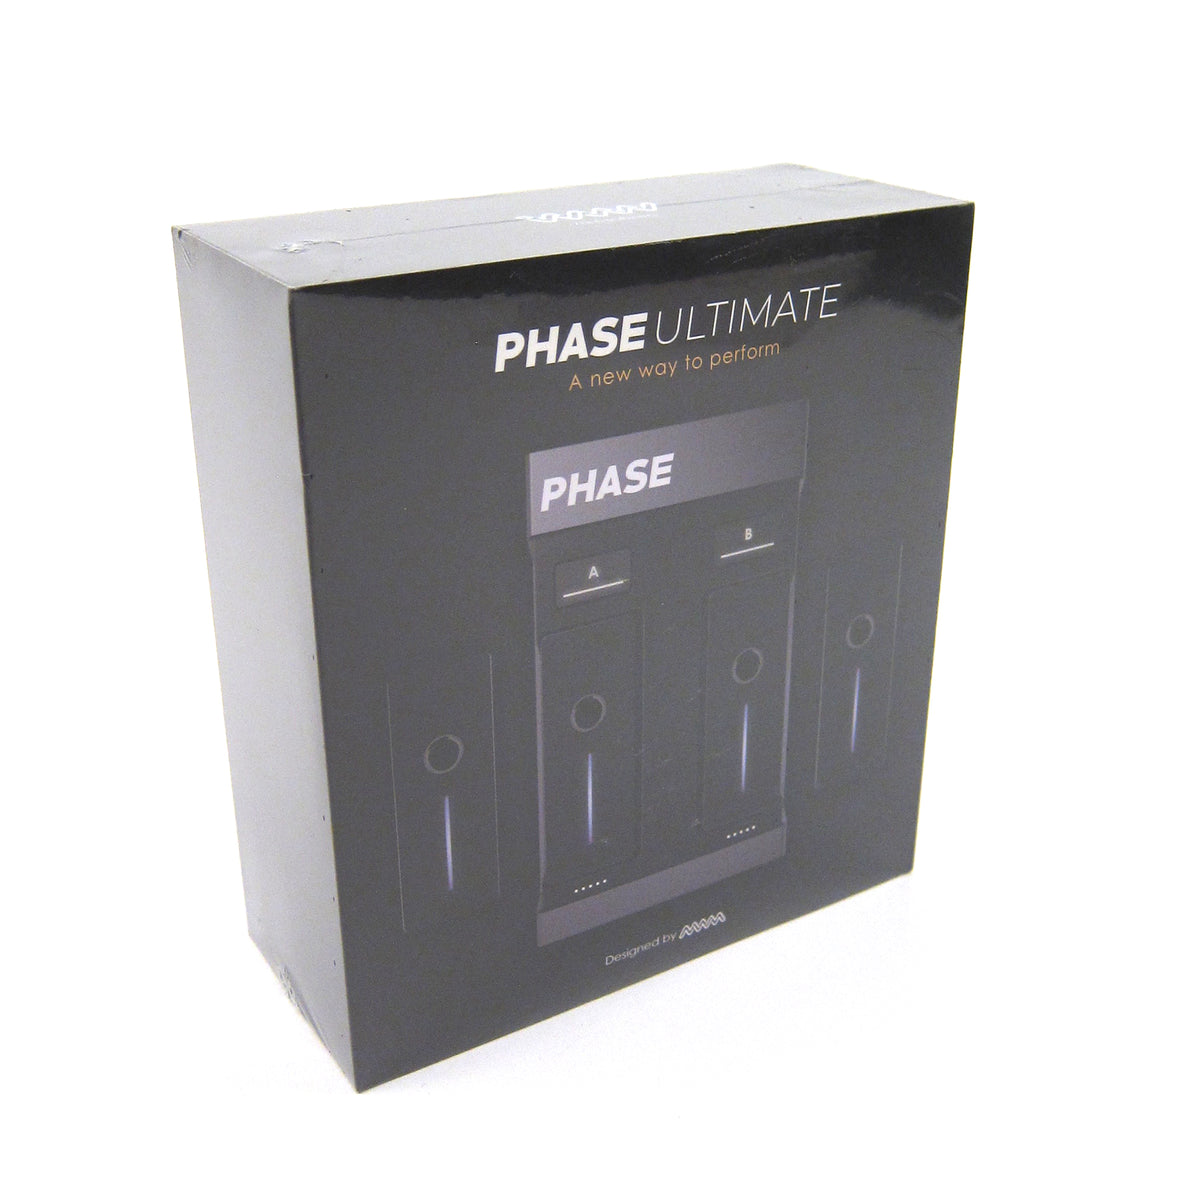 MWM: Phase Ultimate DVS DJ Controller - 4 Remotes (MWM-PHASE-UL)